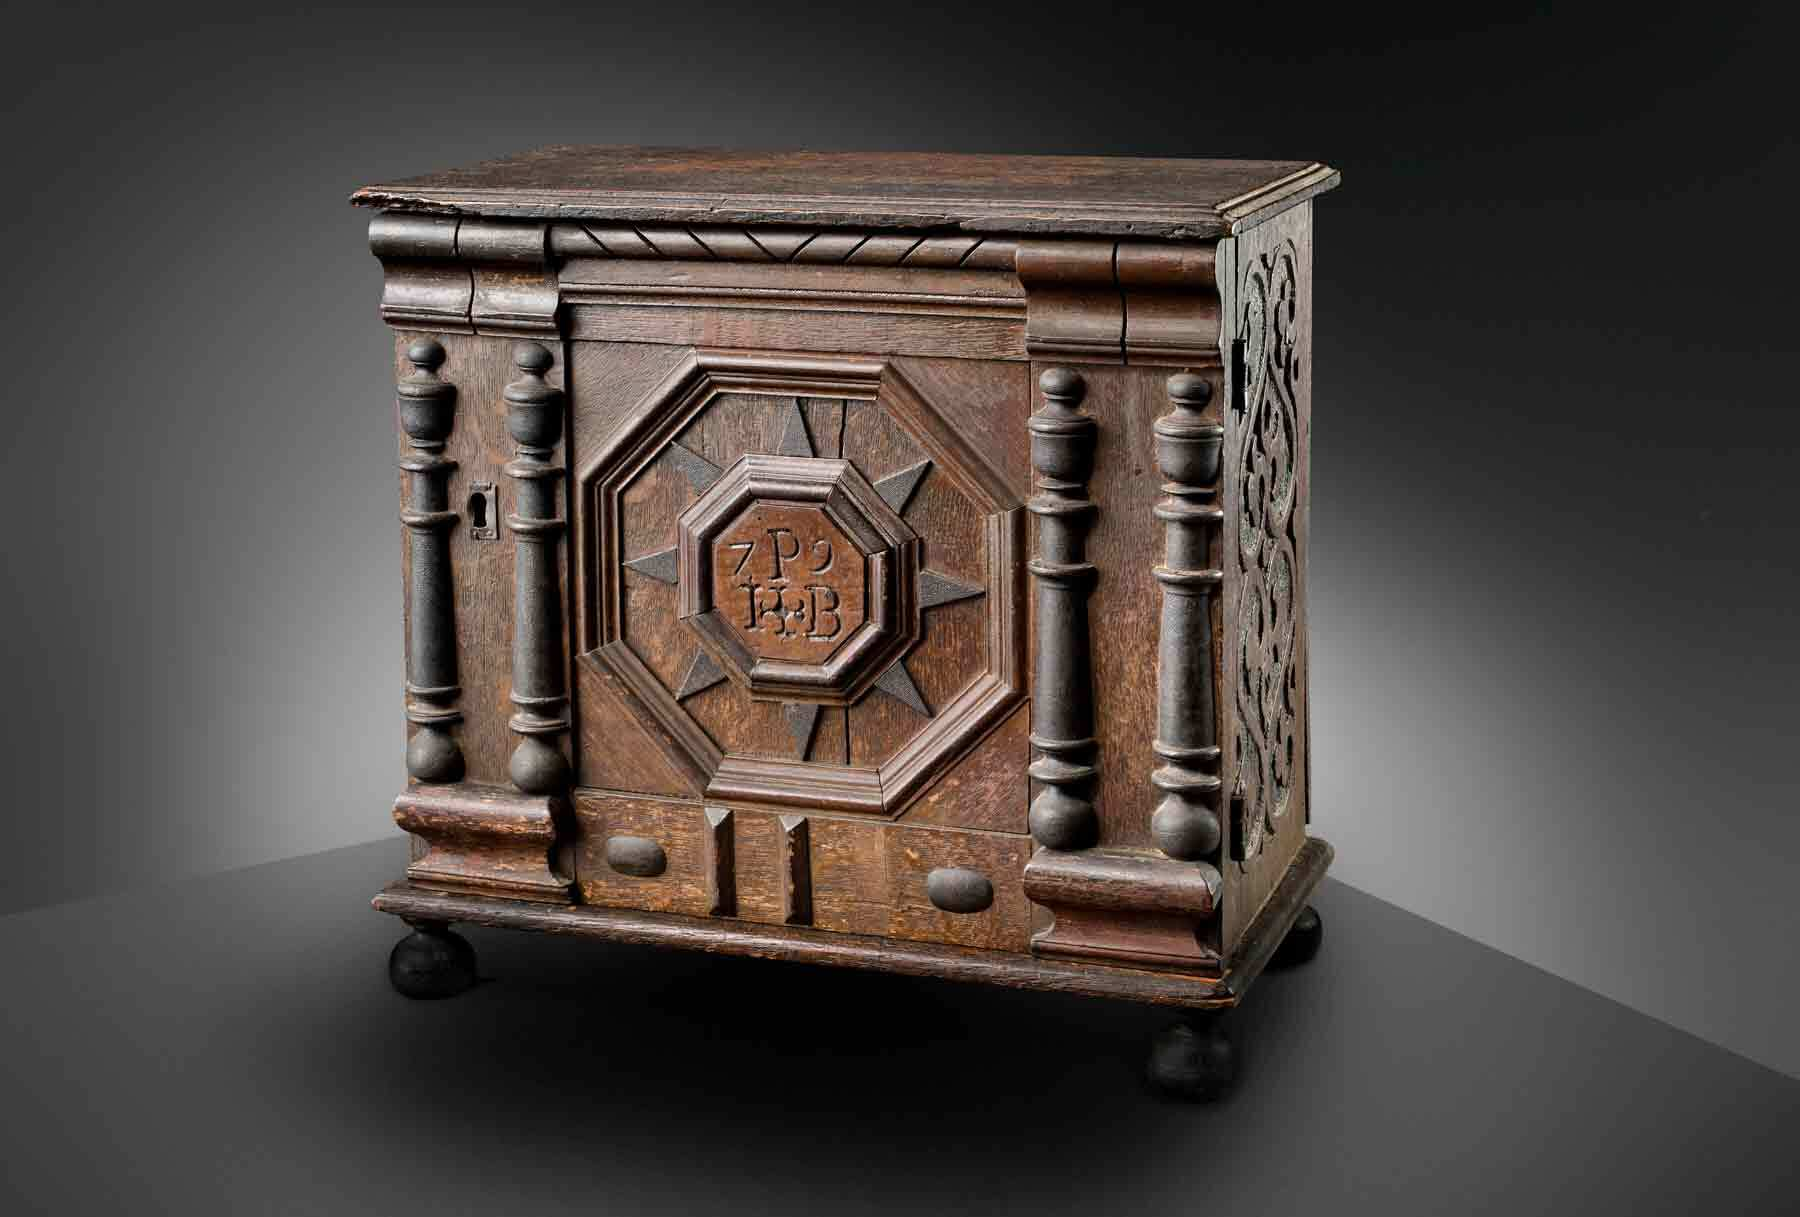 James Symonds, Valuables cabinet owned by Joseph and Bathsheba Pope, 1679. Oak, maple, iron, and paint, 16 1/2 x 17 x 9 1/2 inches (41.91 x 43.18 x 24.13 cm). Museum purchase, made possible by anonymous donors, 2000, 138011. Photo by Dennis Helmar